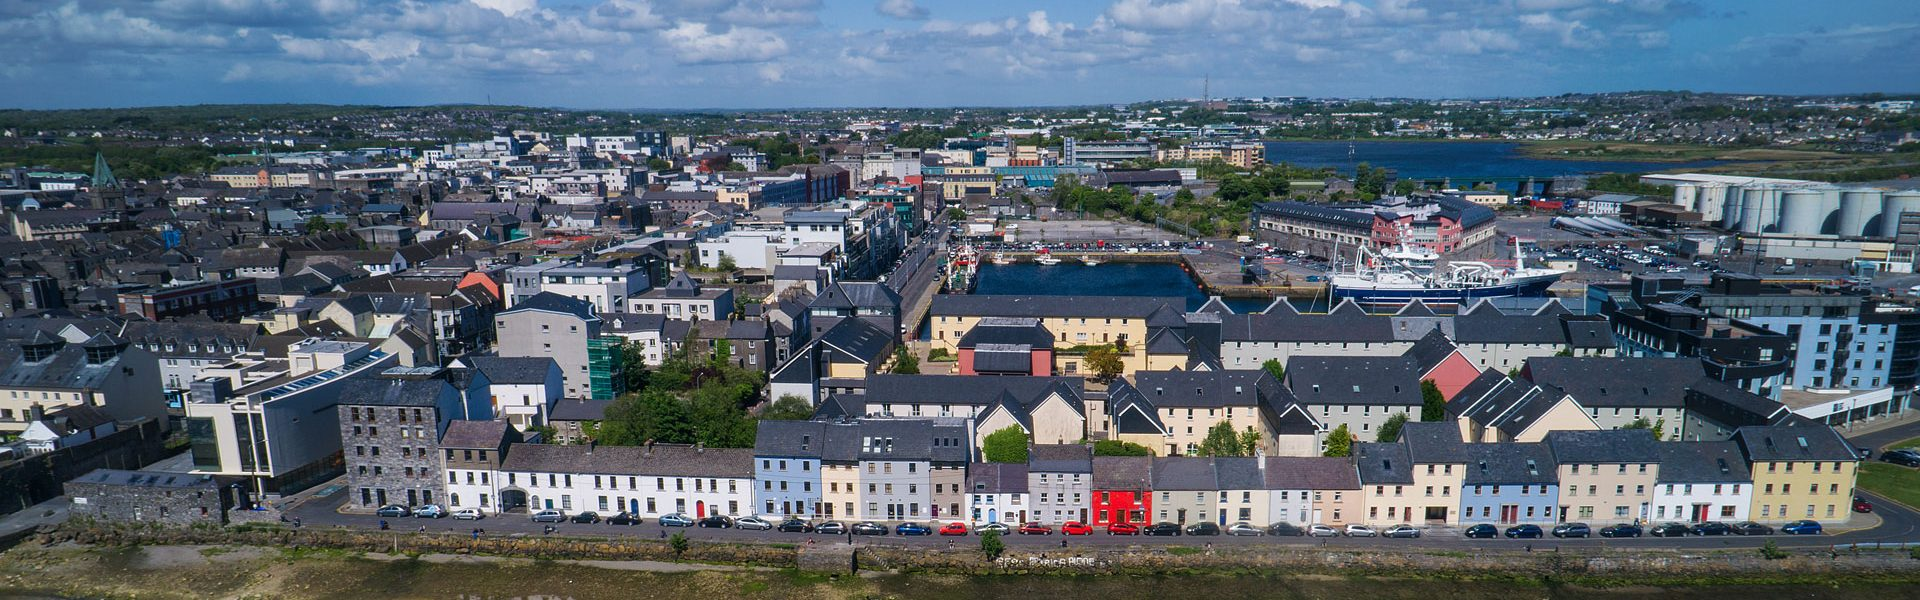 galway-relocations-slider-claddagh-tall